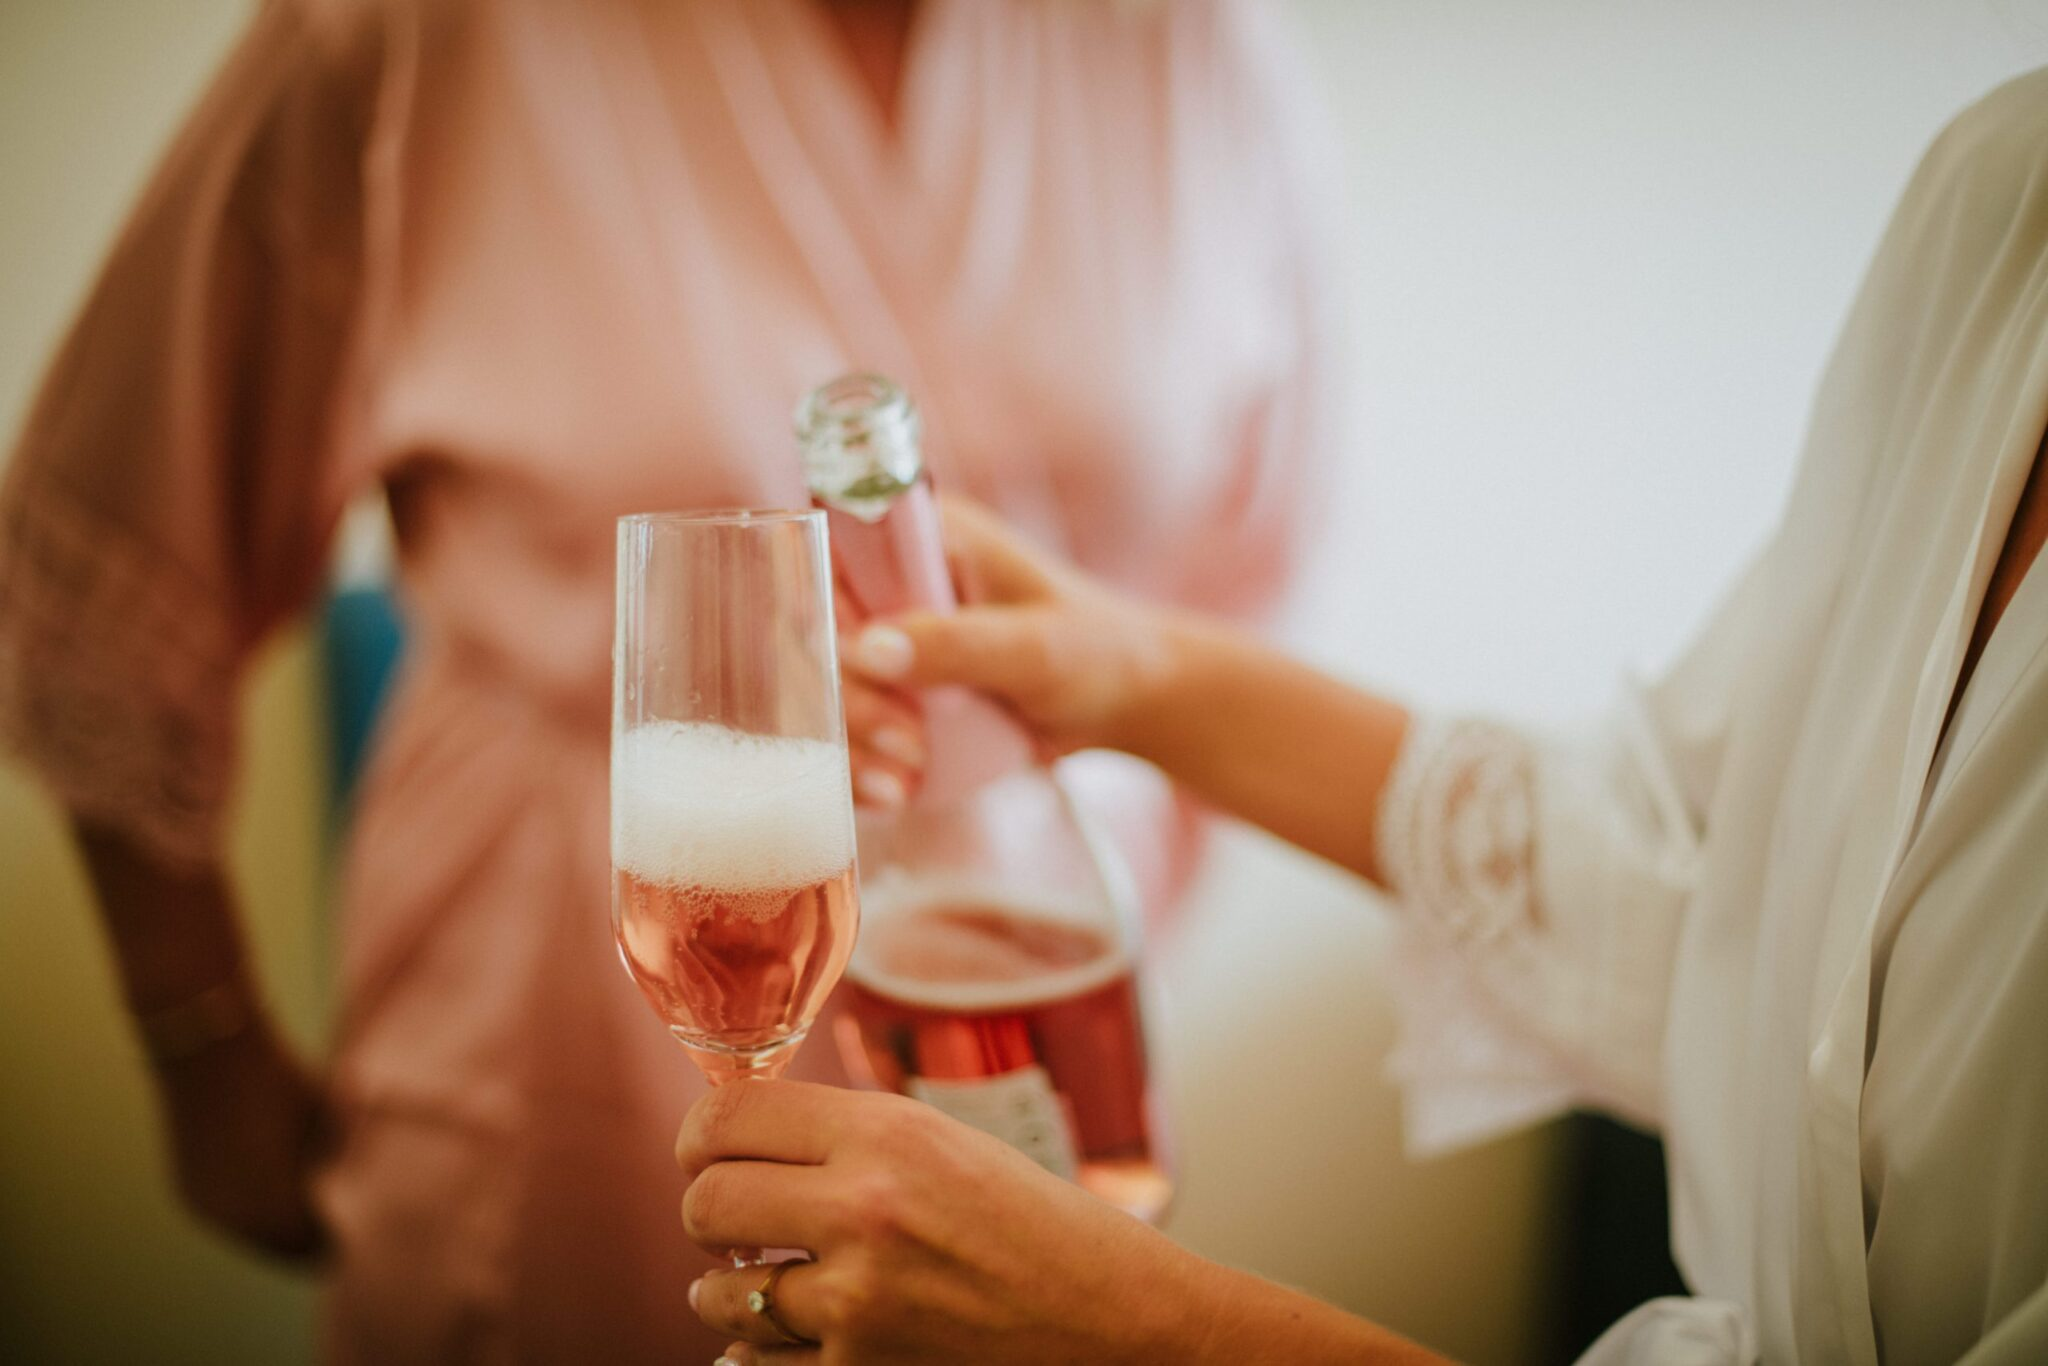 This is a photo of the bride sharing some prosecco with her bridesmaids. It's pink as well as the dressing gown of the bridesmaid in the background, while the bride has a white one. You can only see their hands, a glass and the bottle.